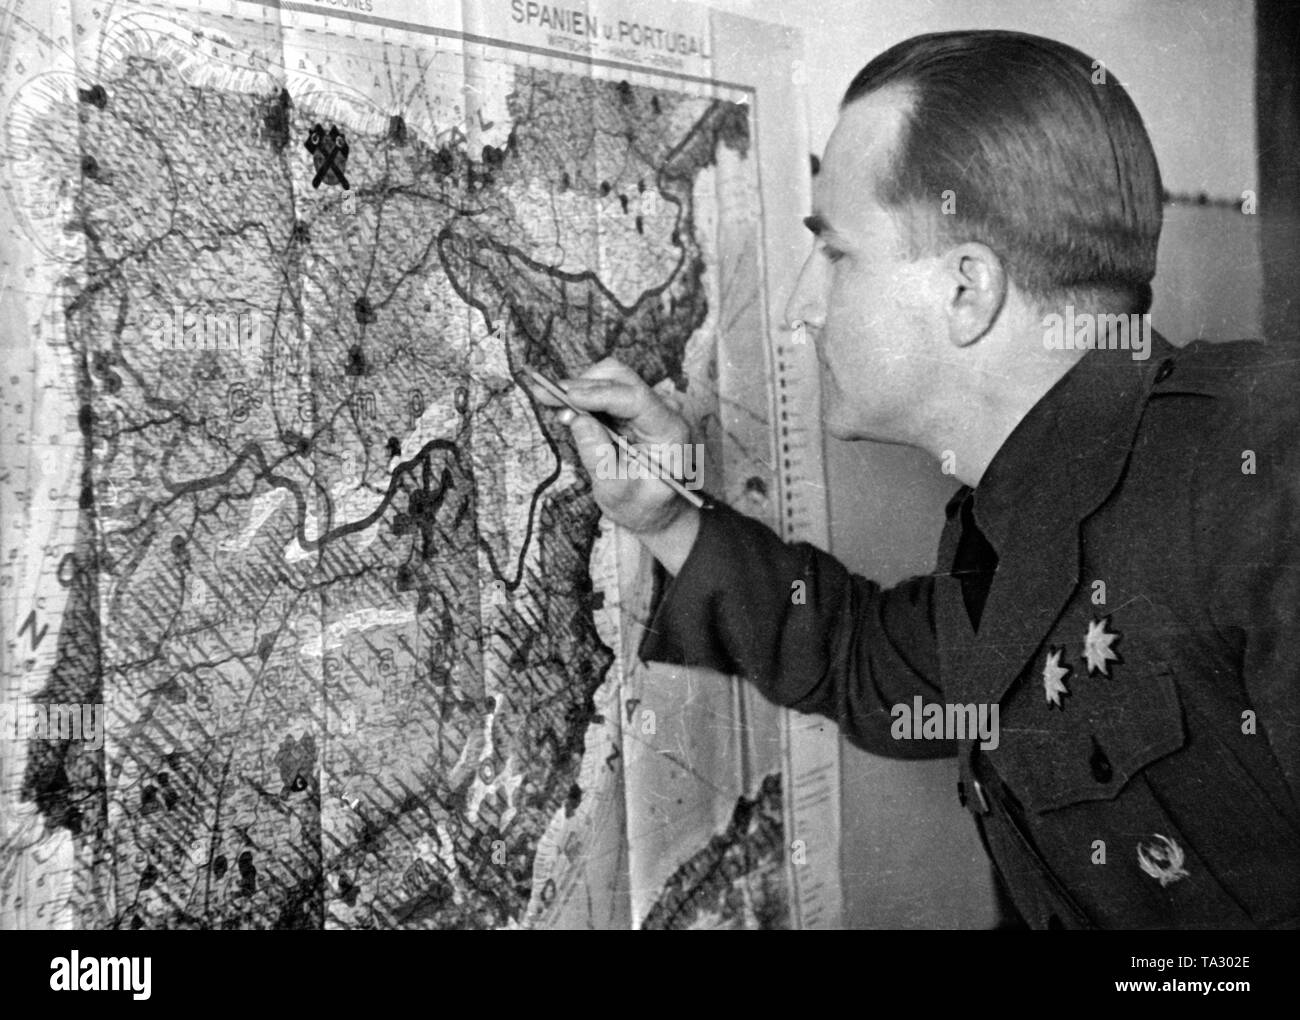 Undated photo of a German major of the Condor Legion, while correcting the new line of the front in a map of the Iberian Peninsula. - Stock Image